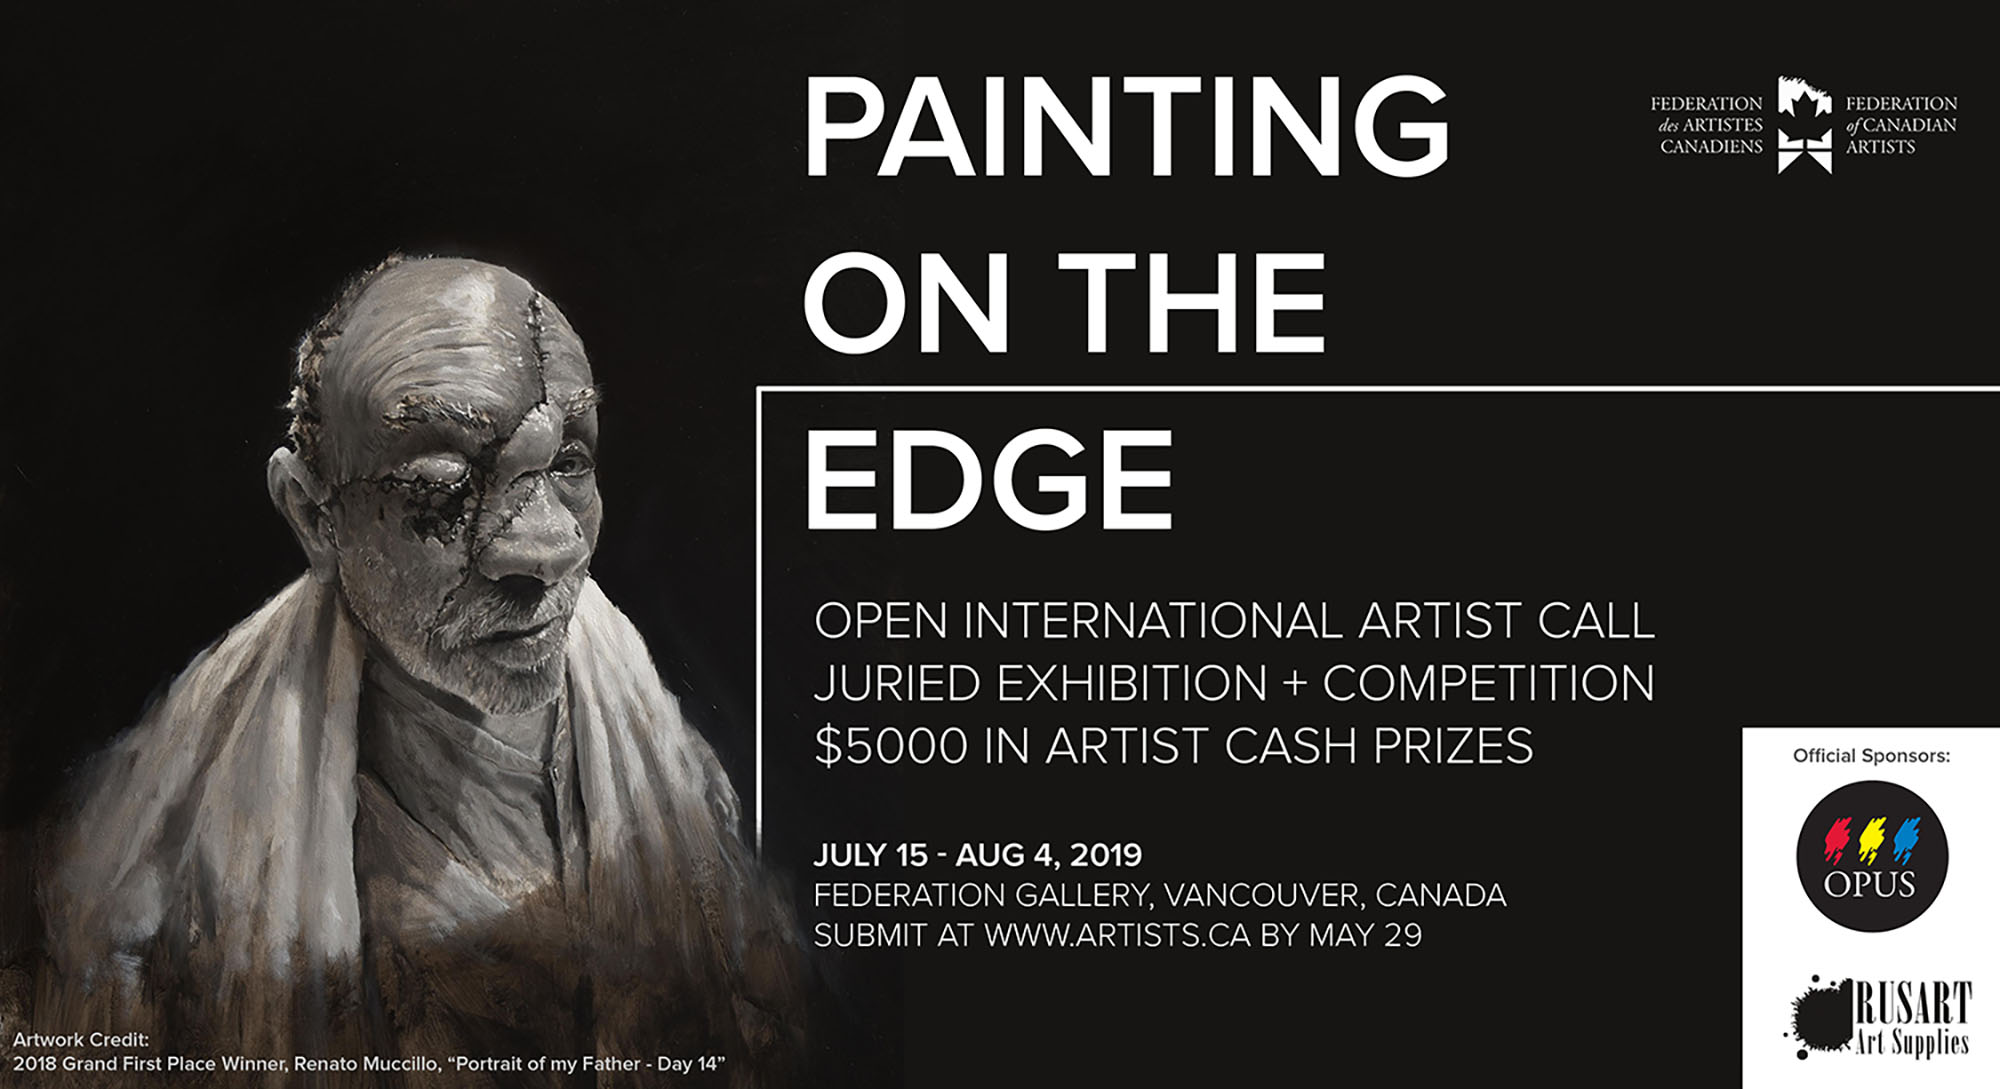 International Open Call to all Artists: Painting on the Edge